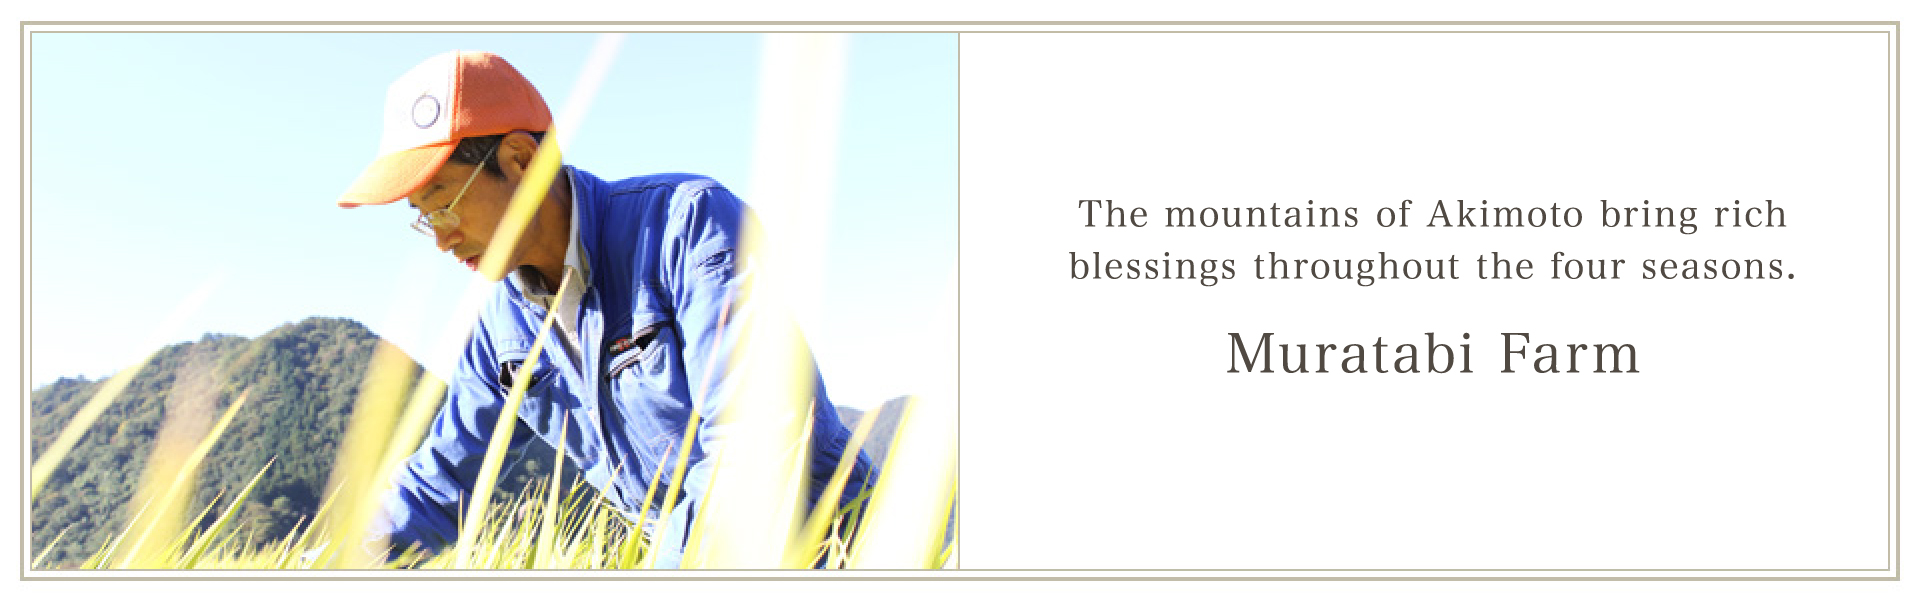 The mountains of Akimoto bring rich blessings throughout the four seasons. Muratabi Farm